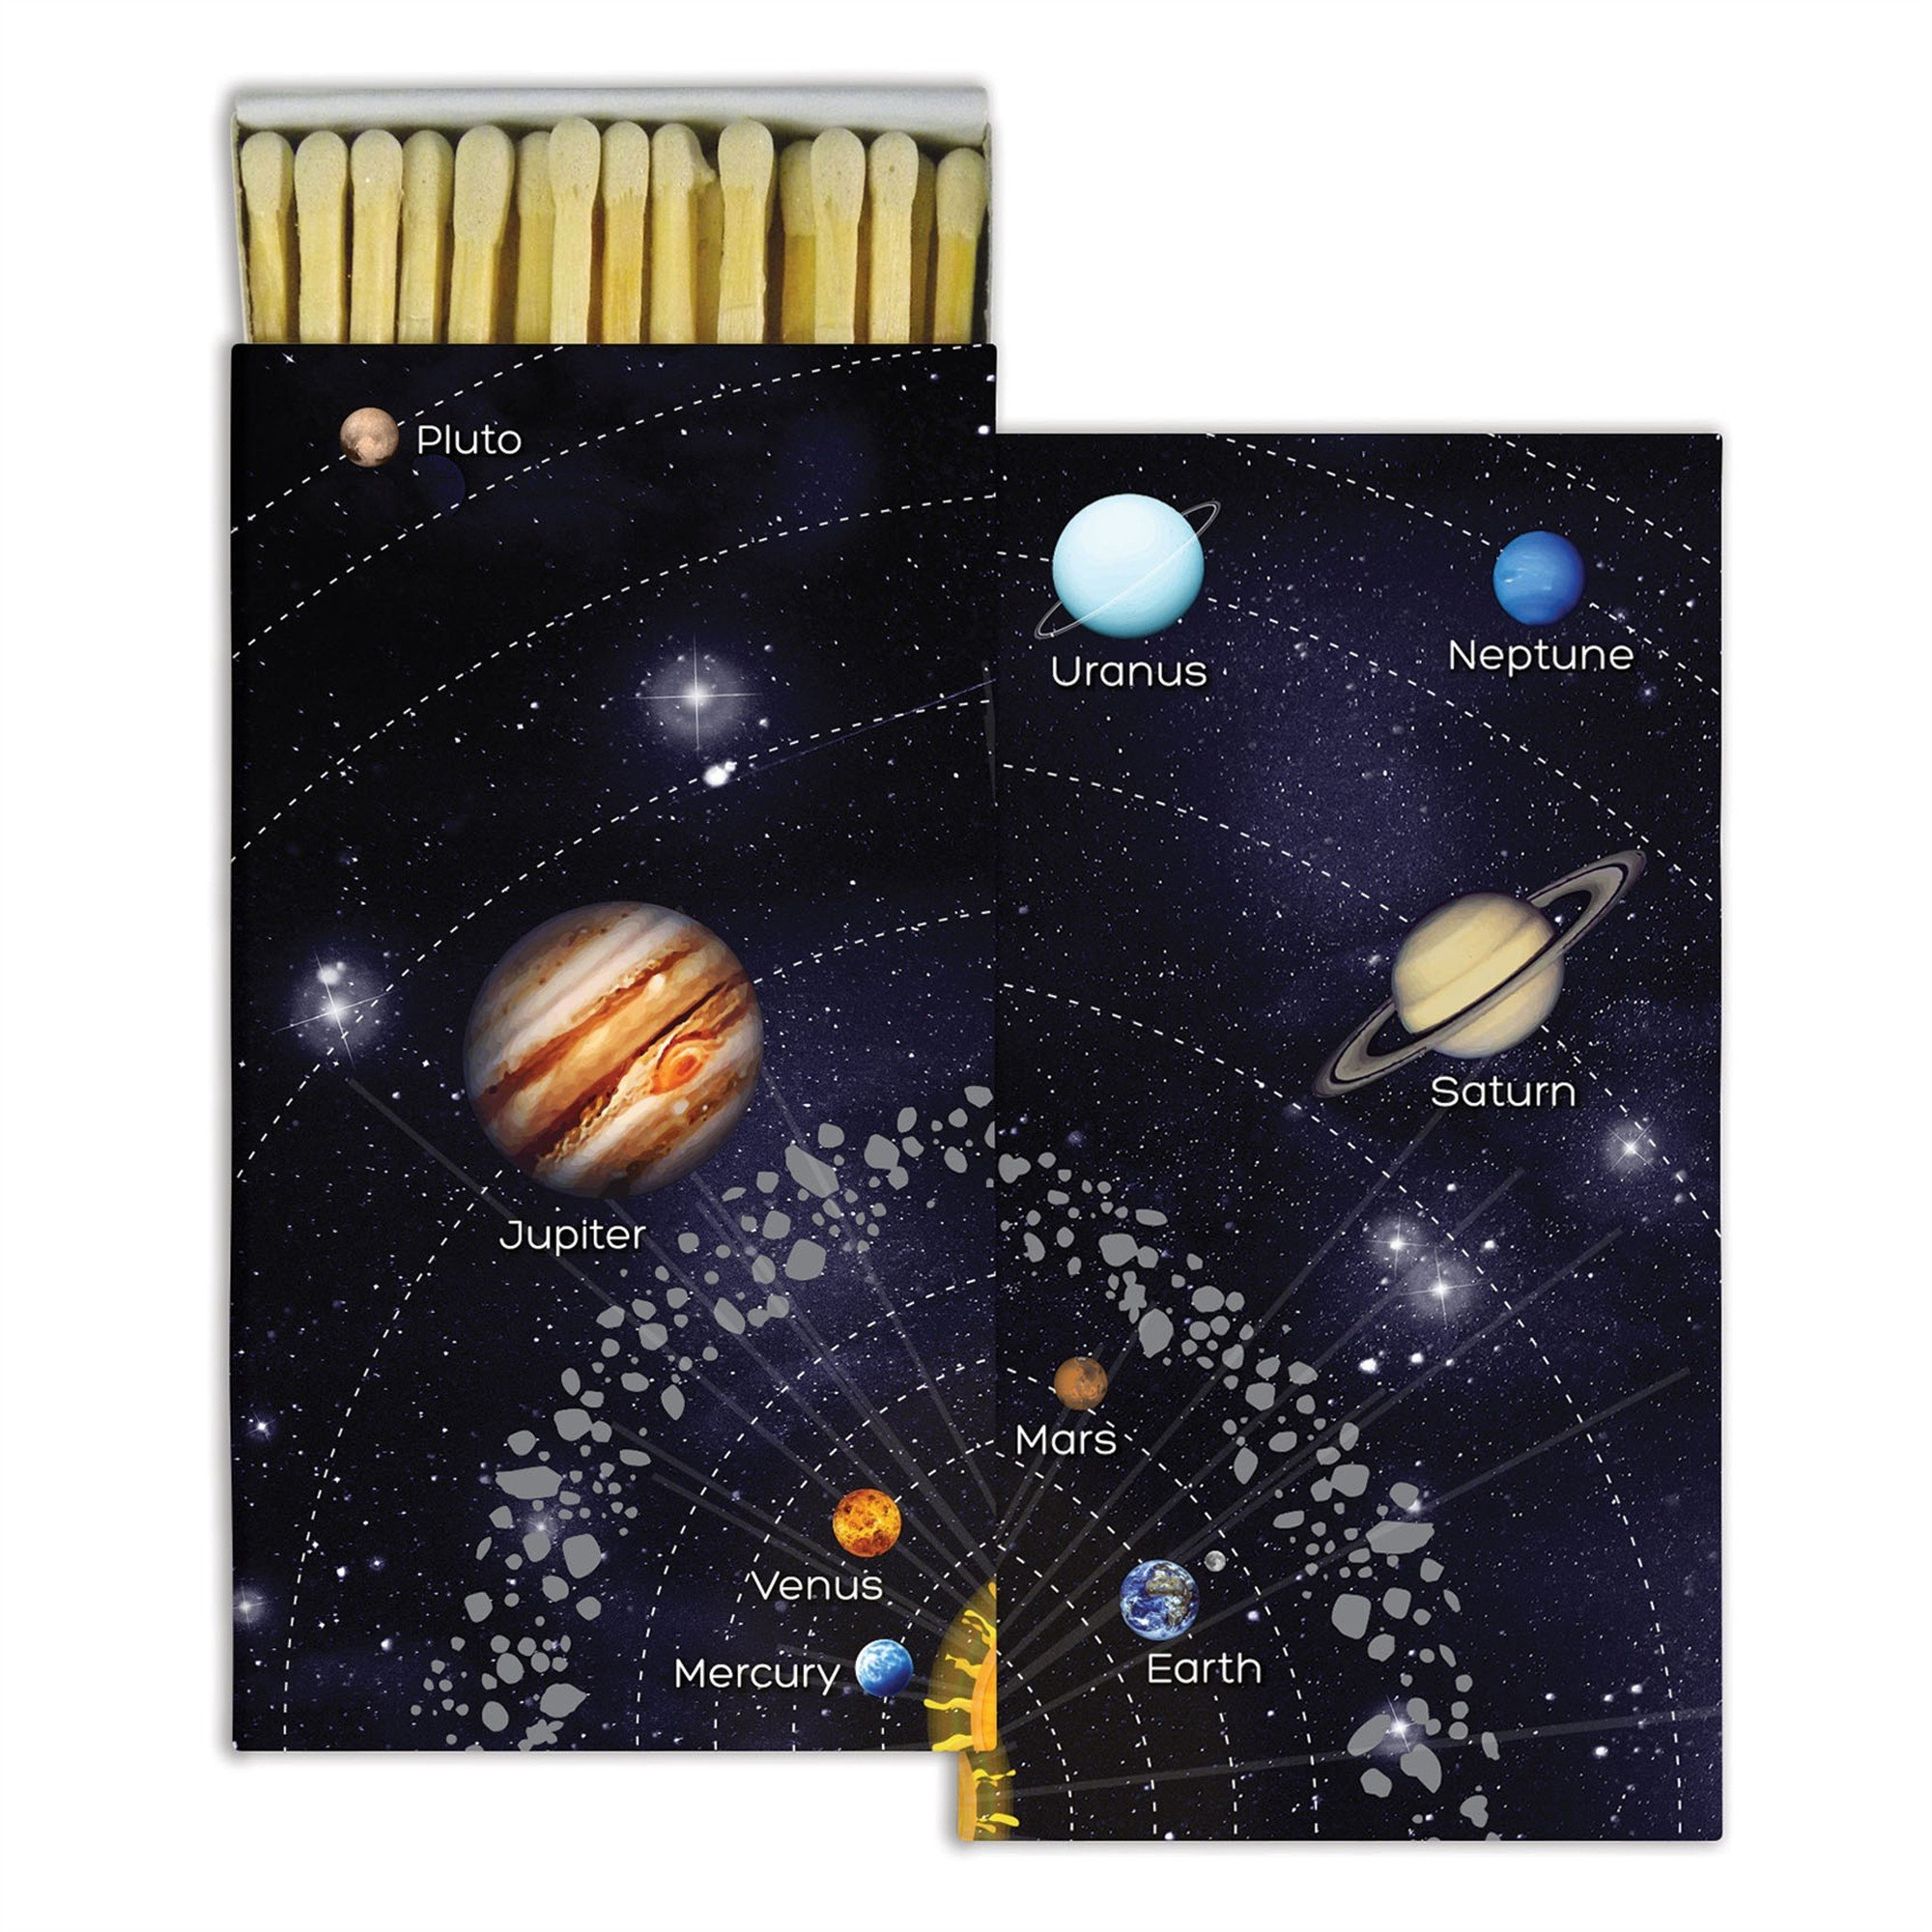 Solar System Planets Matches | Set of 10 Outer Space Astronomy